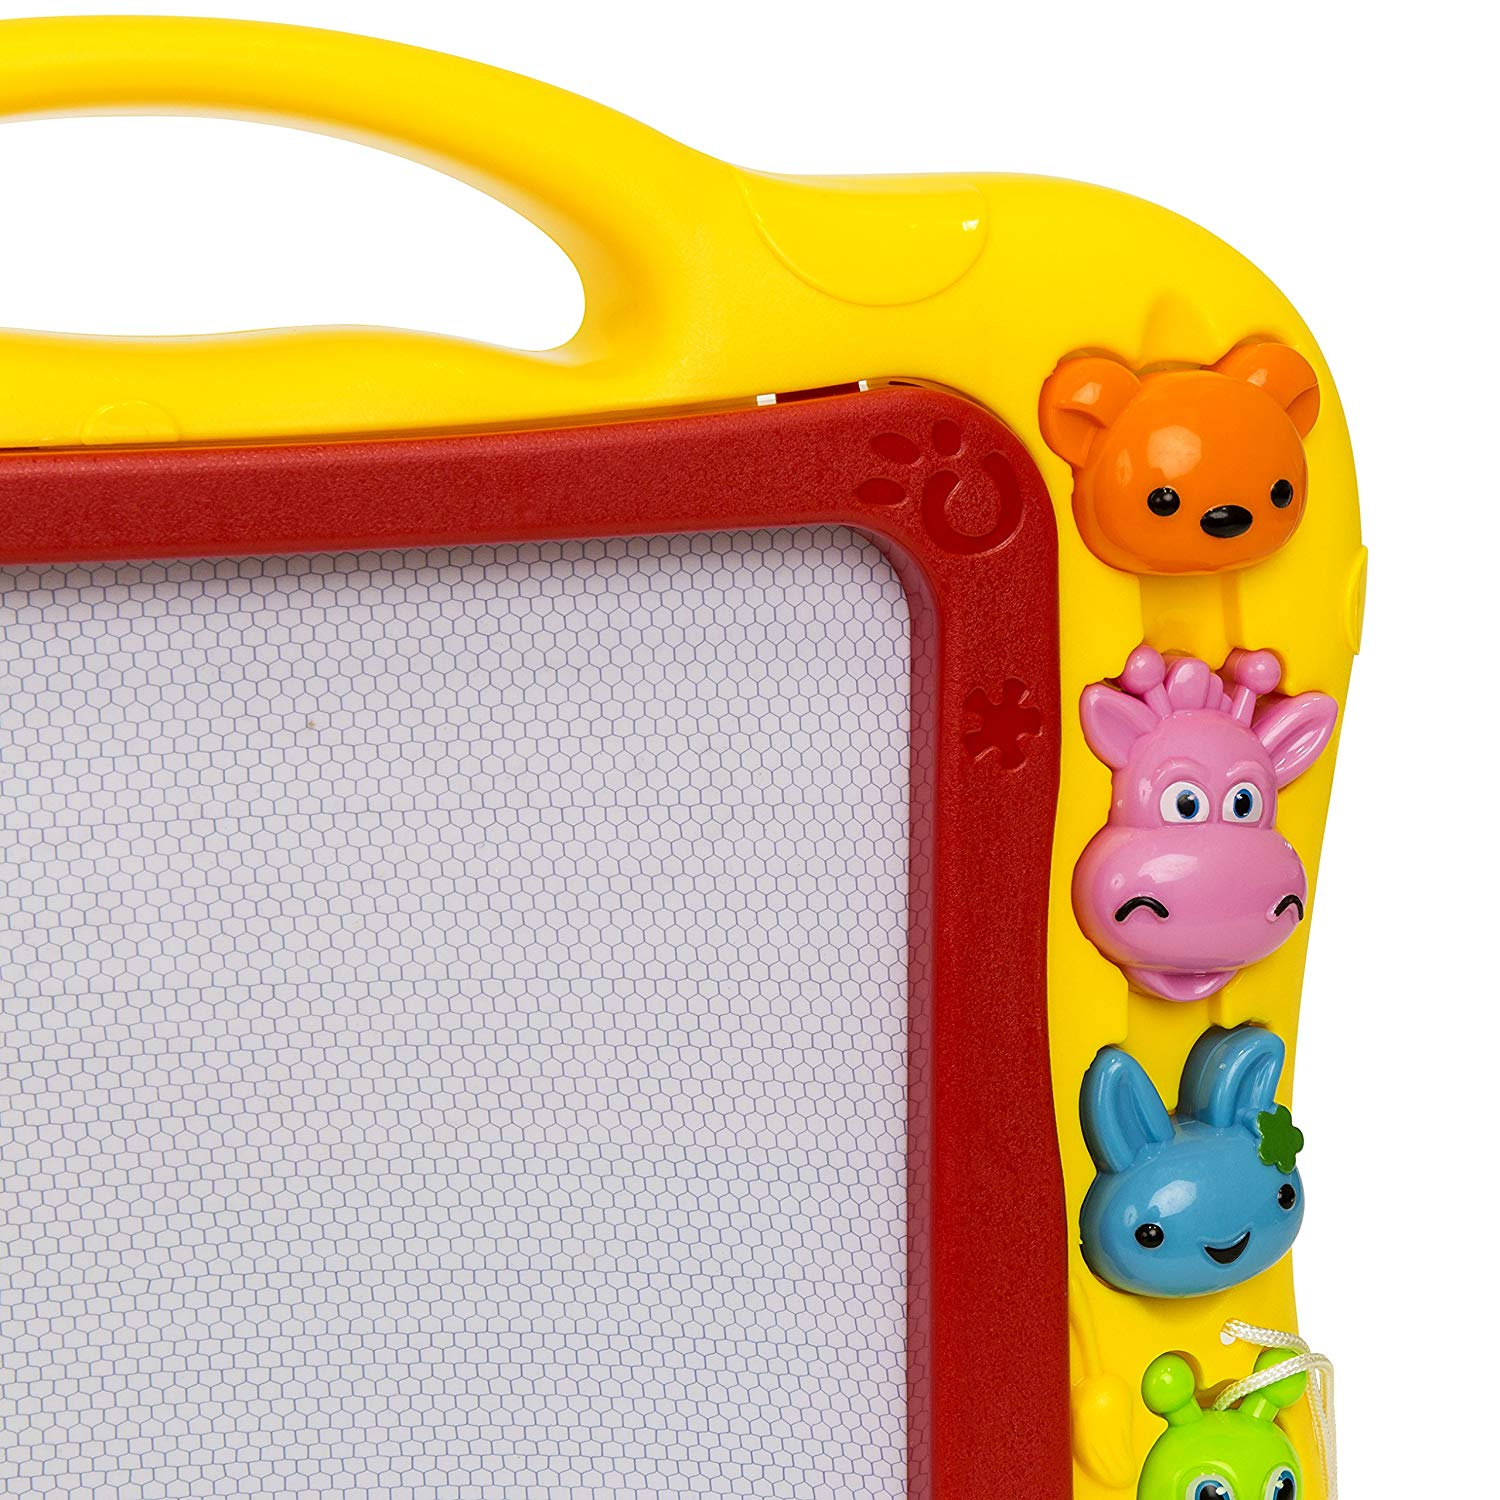 Magnetic Colorful Writing Board w/ Pencil, Eraser, and Learn-Along Buttons & Speakers - Yellow